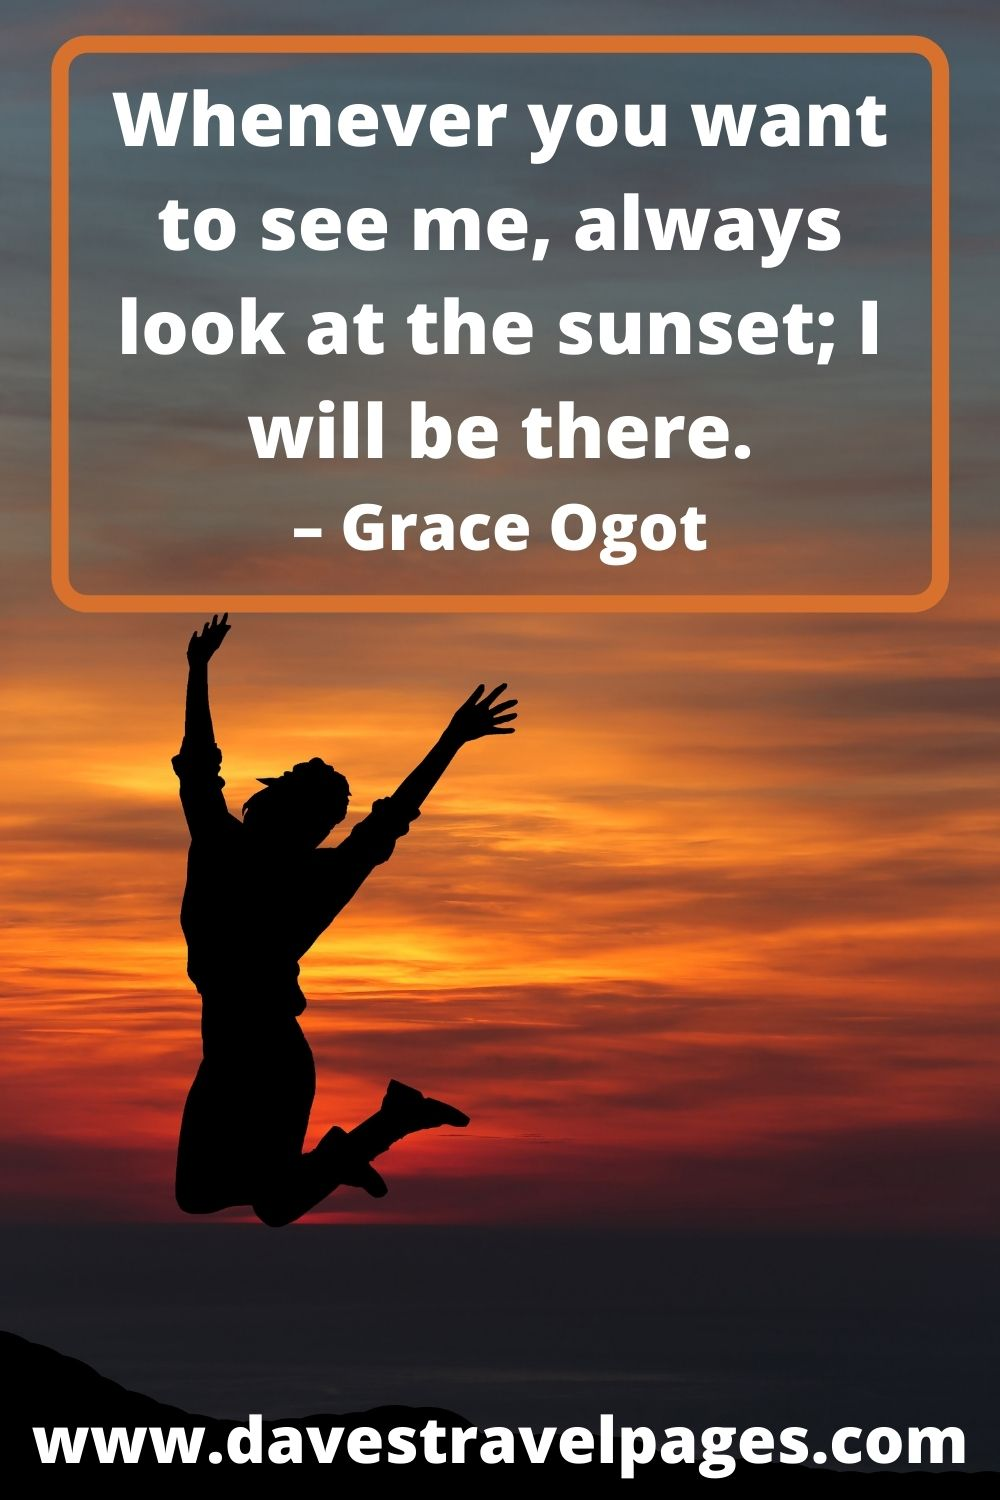 Whenever you want to see me, always look at the sunset; I will be there. – Grace Ogot